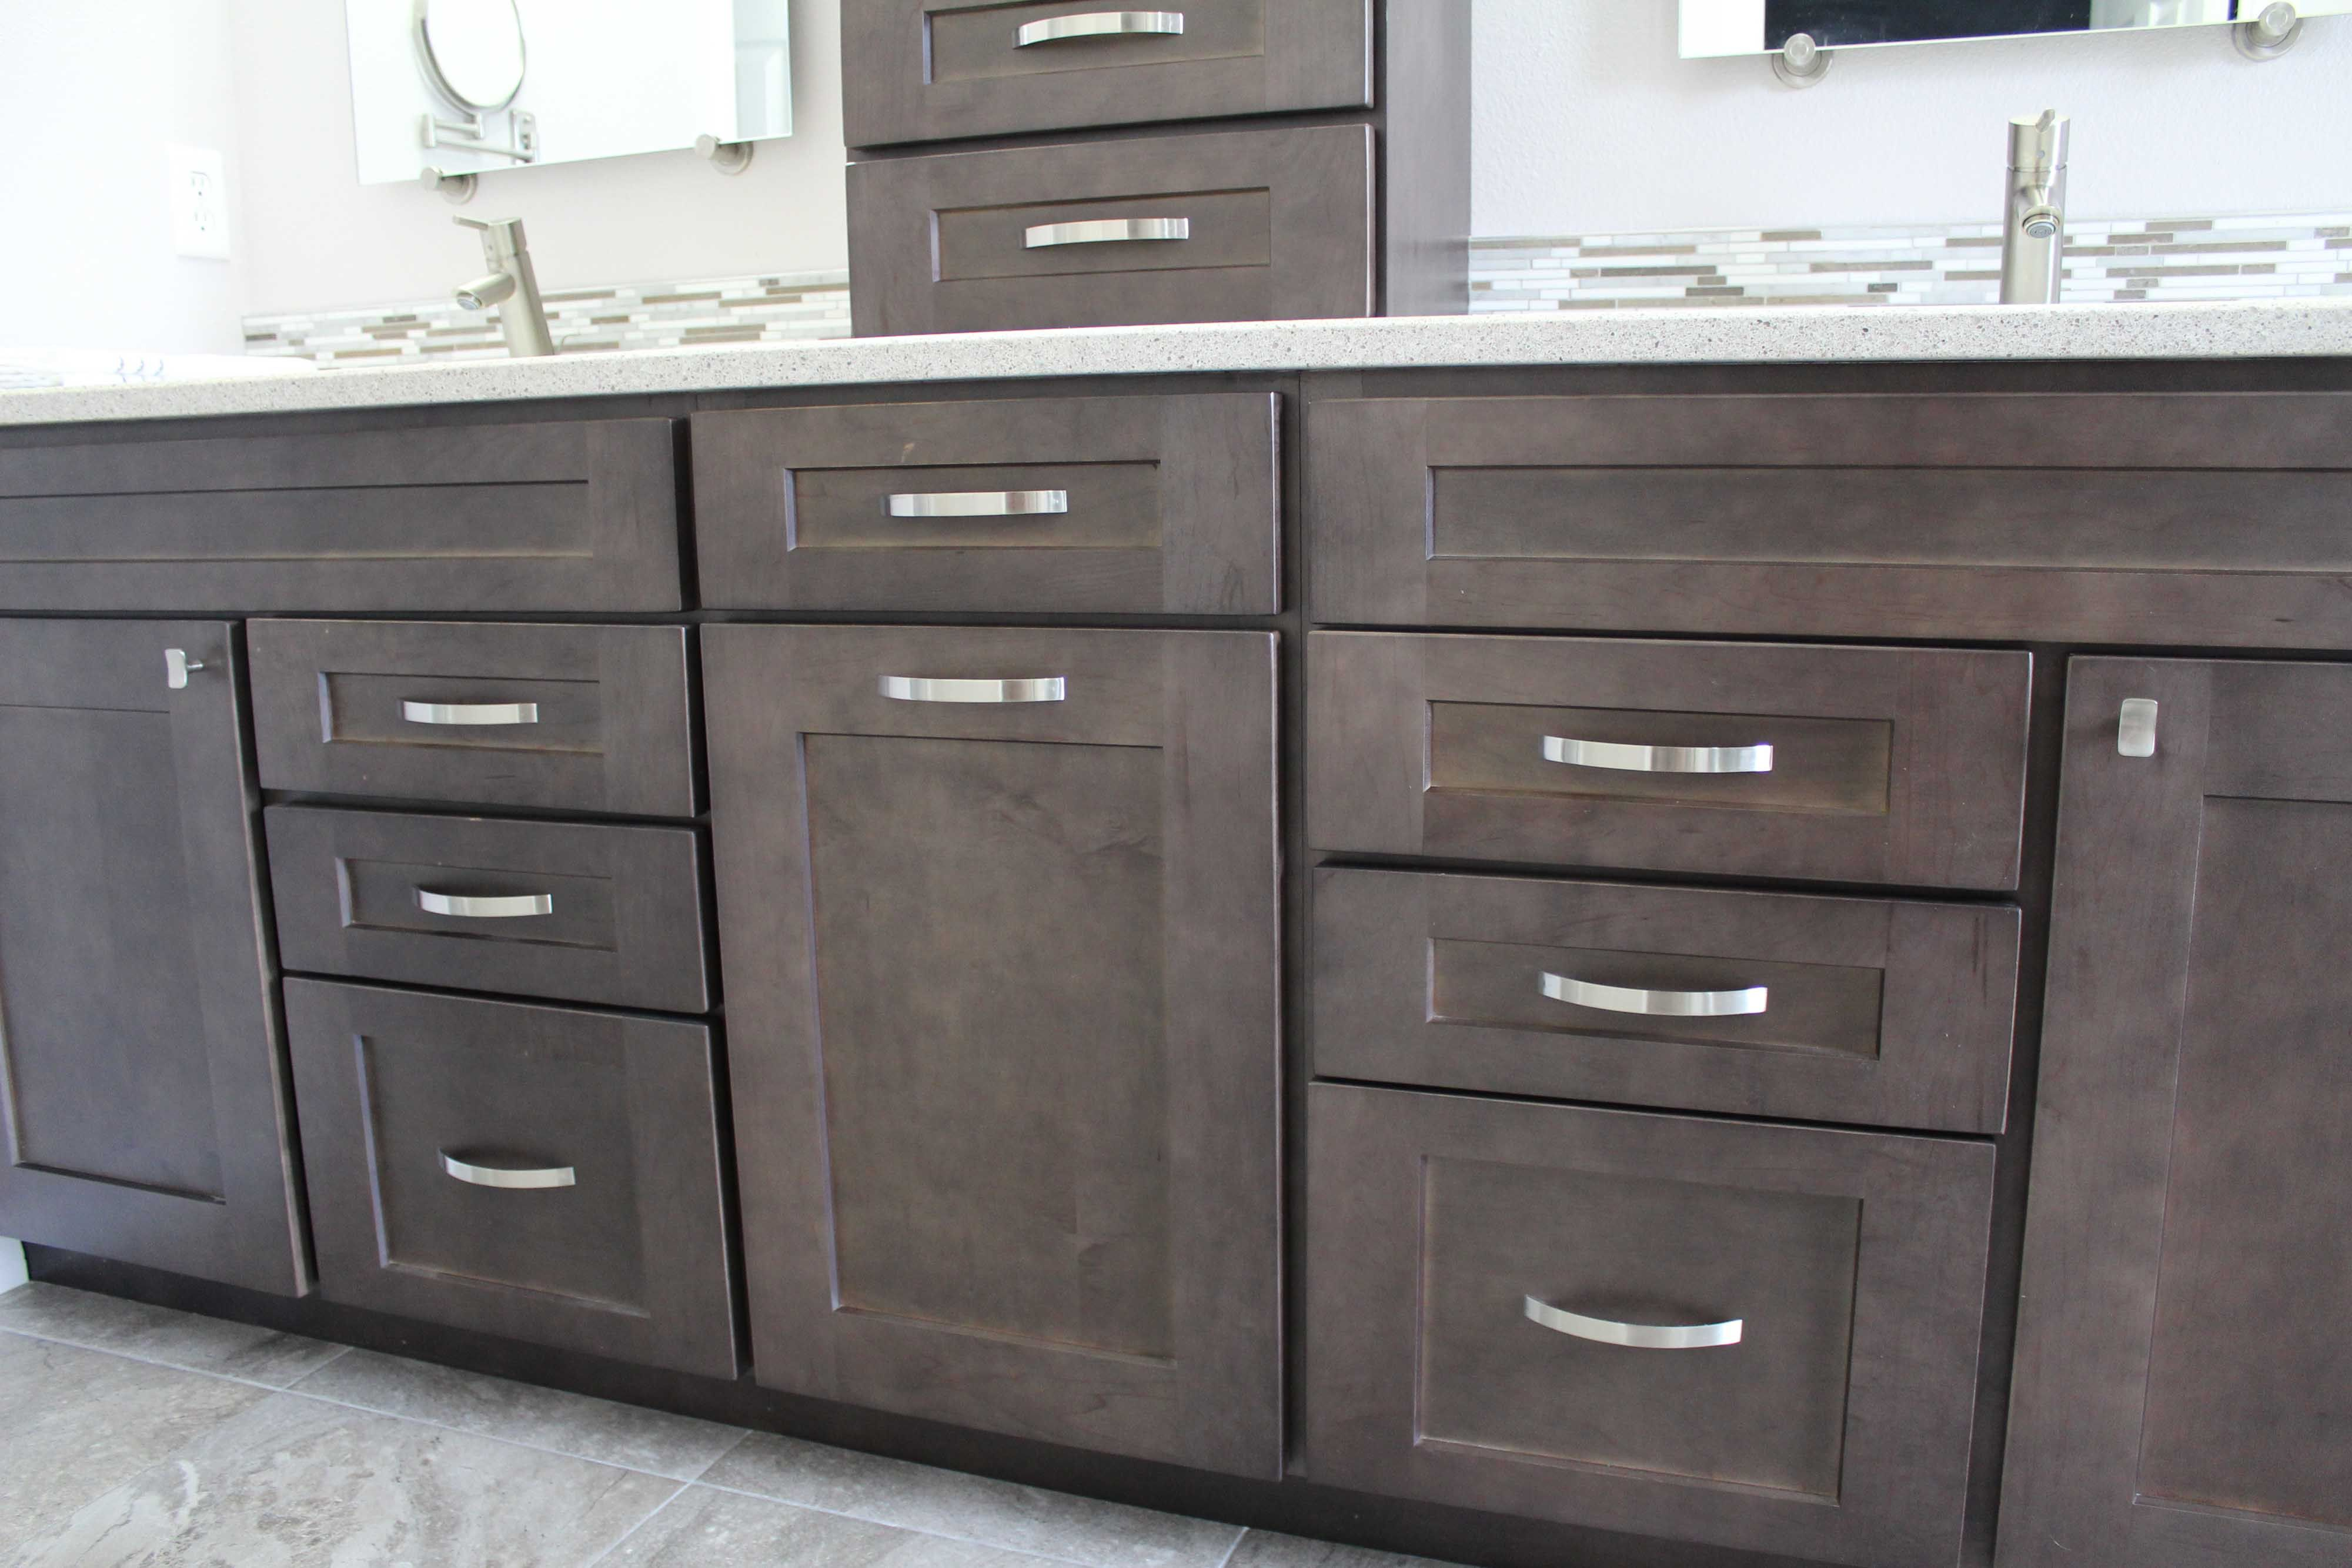 Shaker Ii Maple Charcoal Drawer Stacks And Waste Basket Stained Kitchen Cabinets Contemporary Bathroom Tiles Small Bathroom With Shower